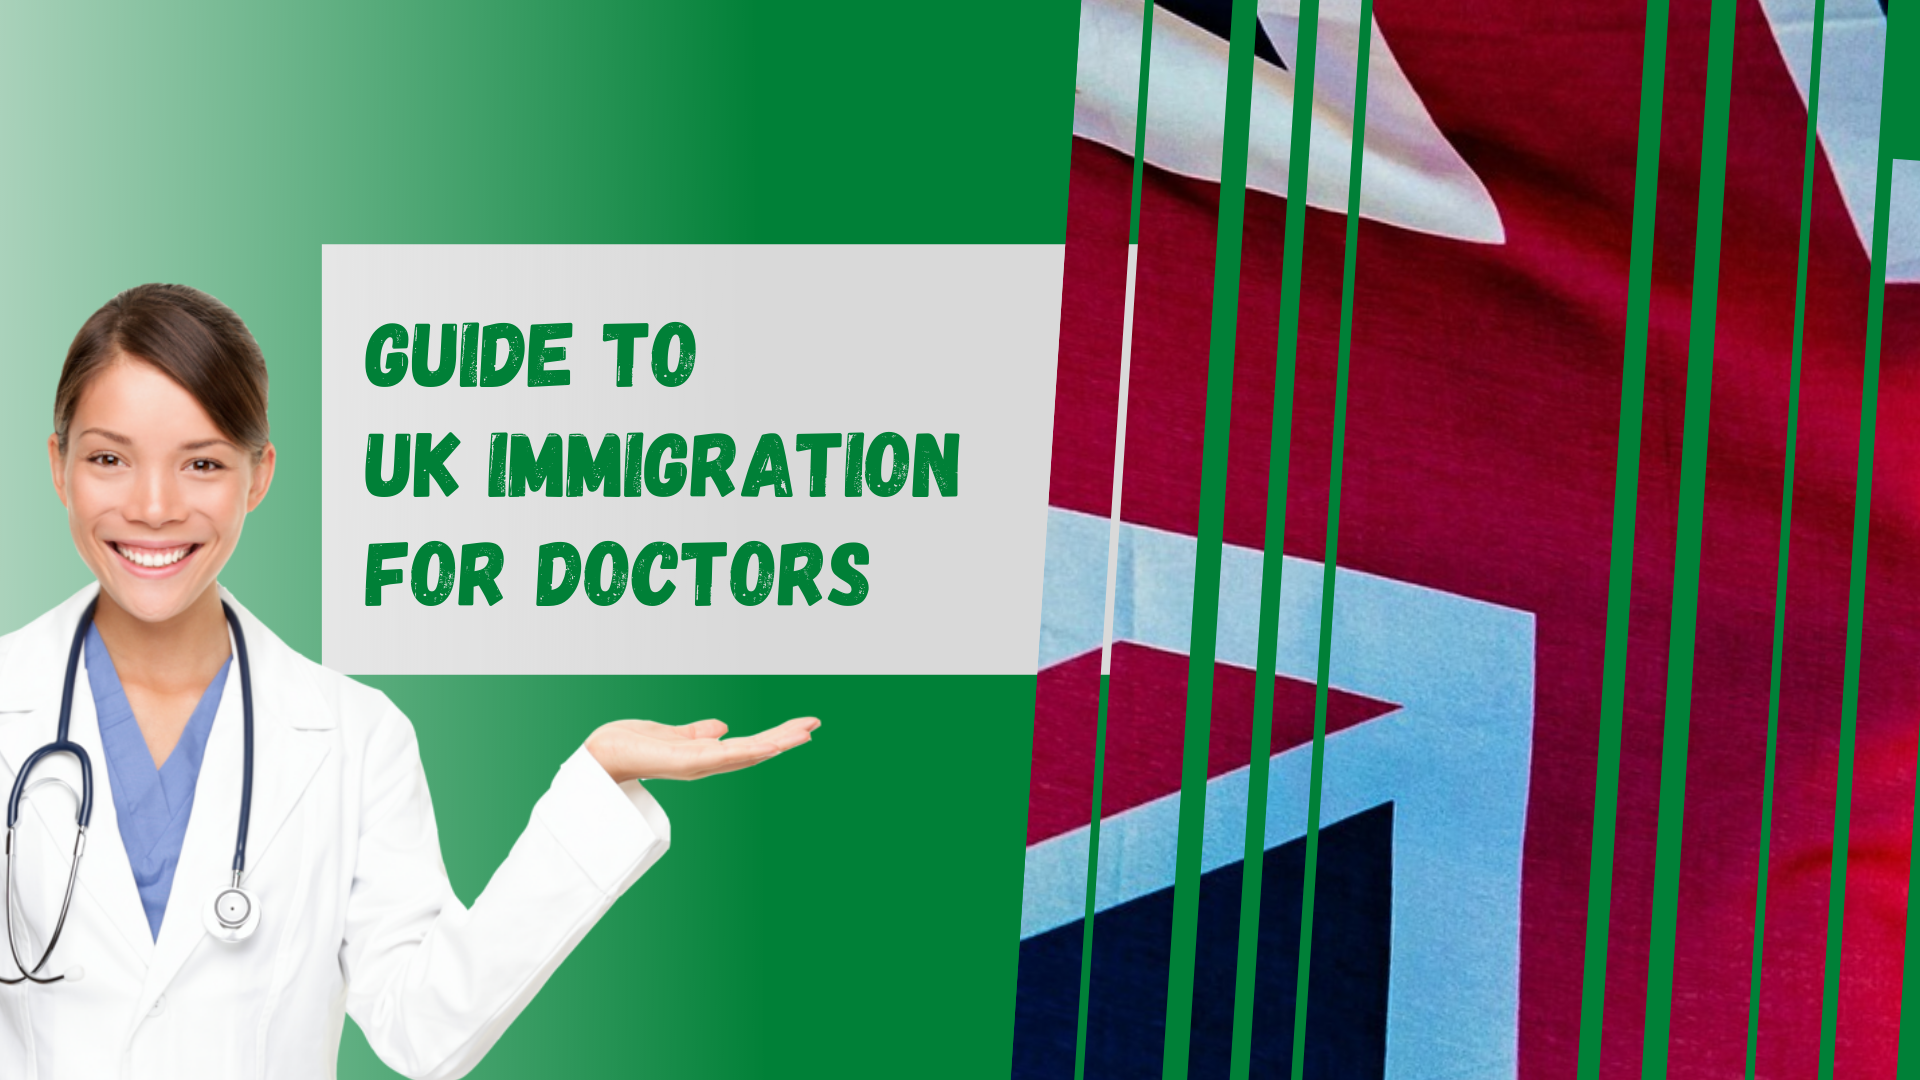 Guide to UK Immigration for Doctors